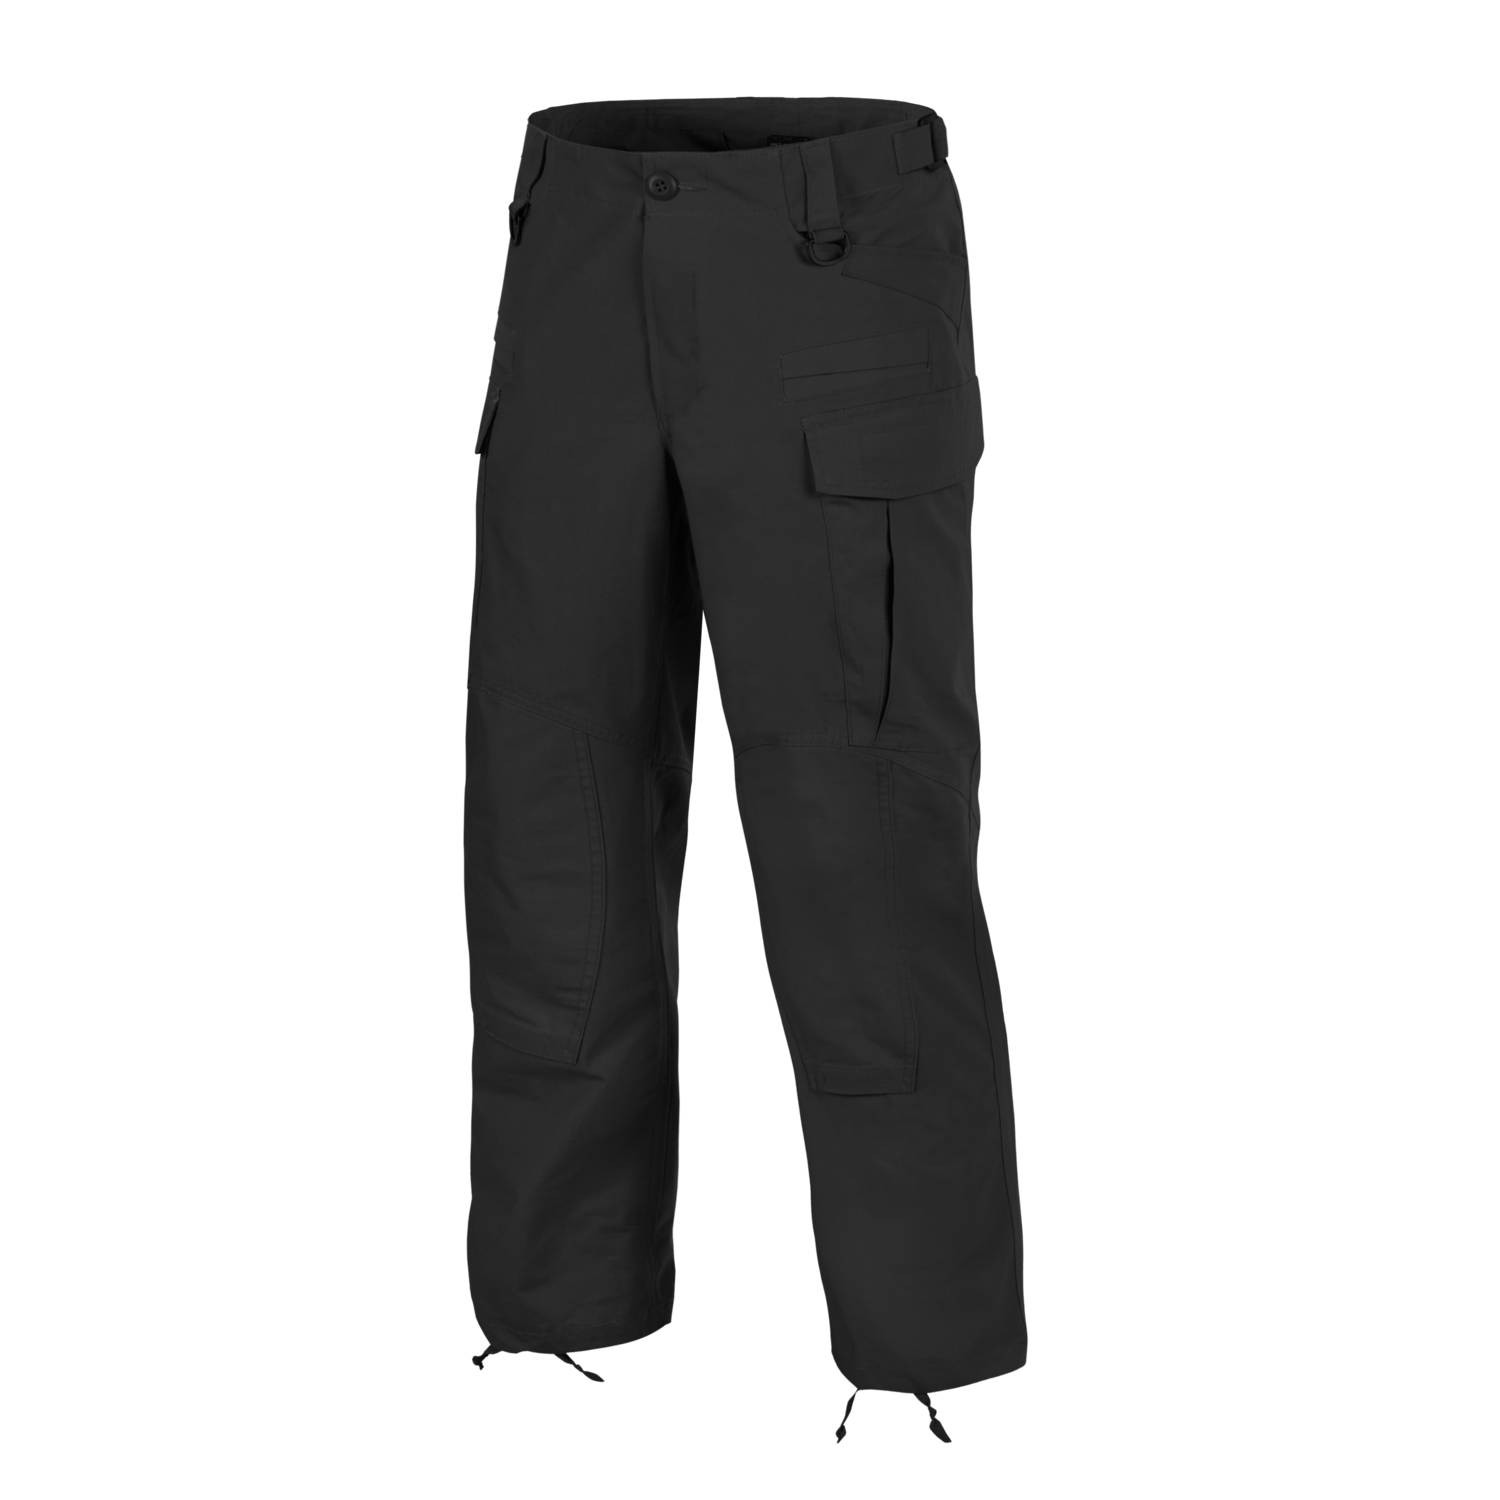 Брюки Helikon-Tex SFU Next PolyCotton рип-стоп black